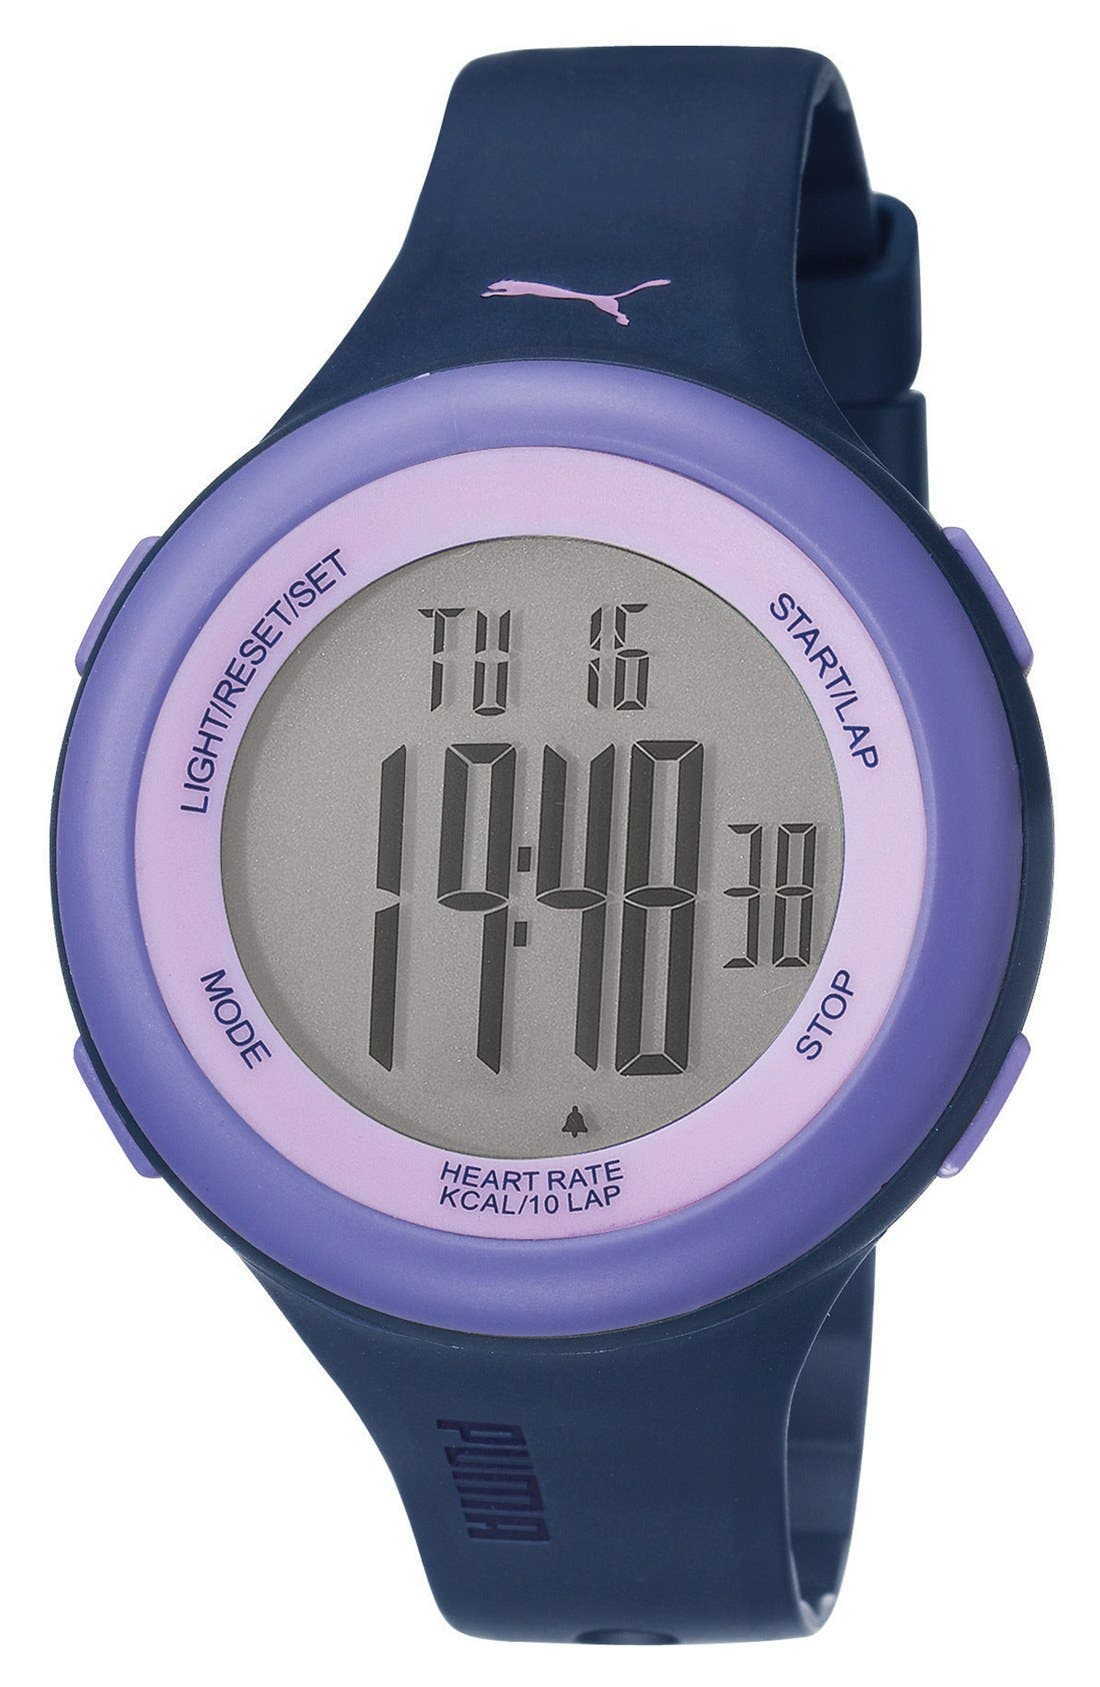 Main Image - PUMA 'Fit' Heart Rate Monitor Watch